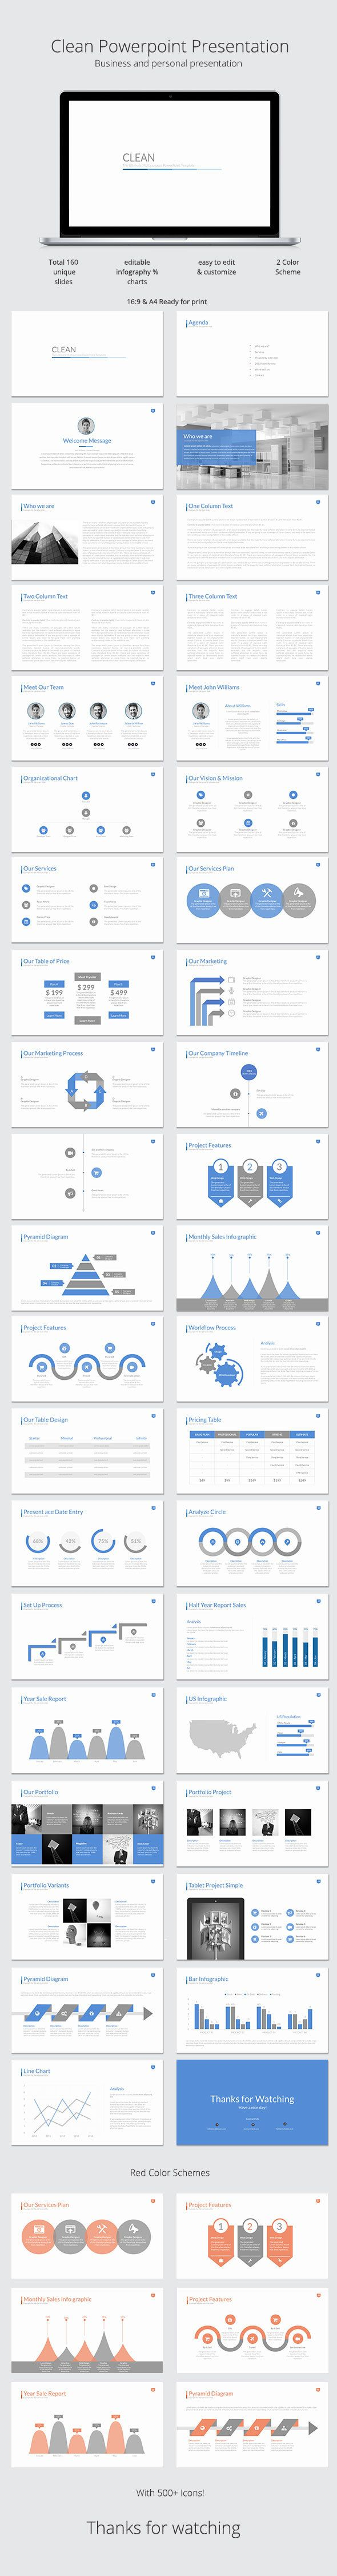 Usdgus  Pretty  Ideas About Presentation On Pinterest  Presentation  With Heavenly Clean Powerpoint Presentation Template Design Slides Download Httpgraphicriver With Agreeable Well Designed Powerpoint Templates Also Bing Bang Bongo Powerpoint In Addition Free Powerpoint Smartart And Simple Key Loader Powerpoint As Well As Number The Stars Powerpoint Additionally  Paragraph Essay Powerpoint From Pinterestcom With Usdgus  Heavenly  Ideas About Presentation On Pinterest  Presentation  With Agreeable Clean Powerpoint Presentation Template Design Slides Download Httpgraphicriver And Pretty Well Designed Powerpoint Templates Also Bing Bang Bongo Powerpoint In Addition Free Powerpoint Smartart From Pinterestcom